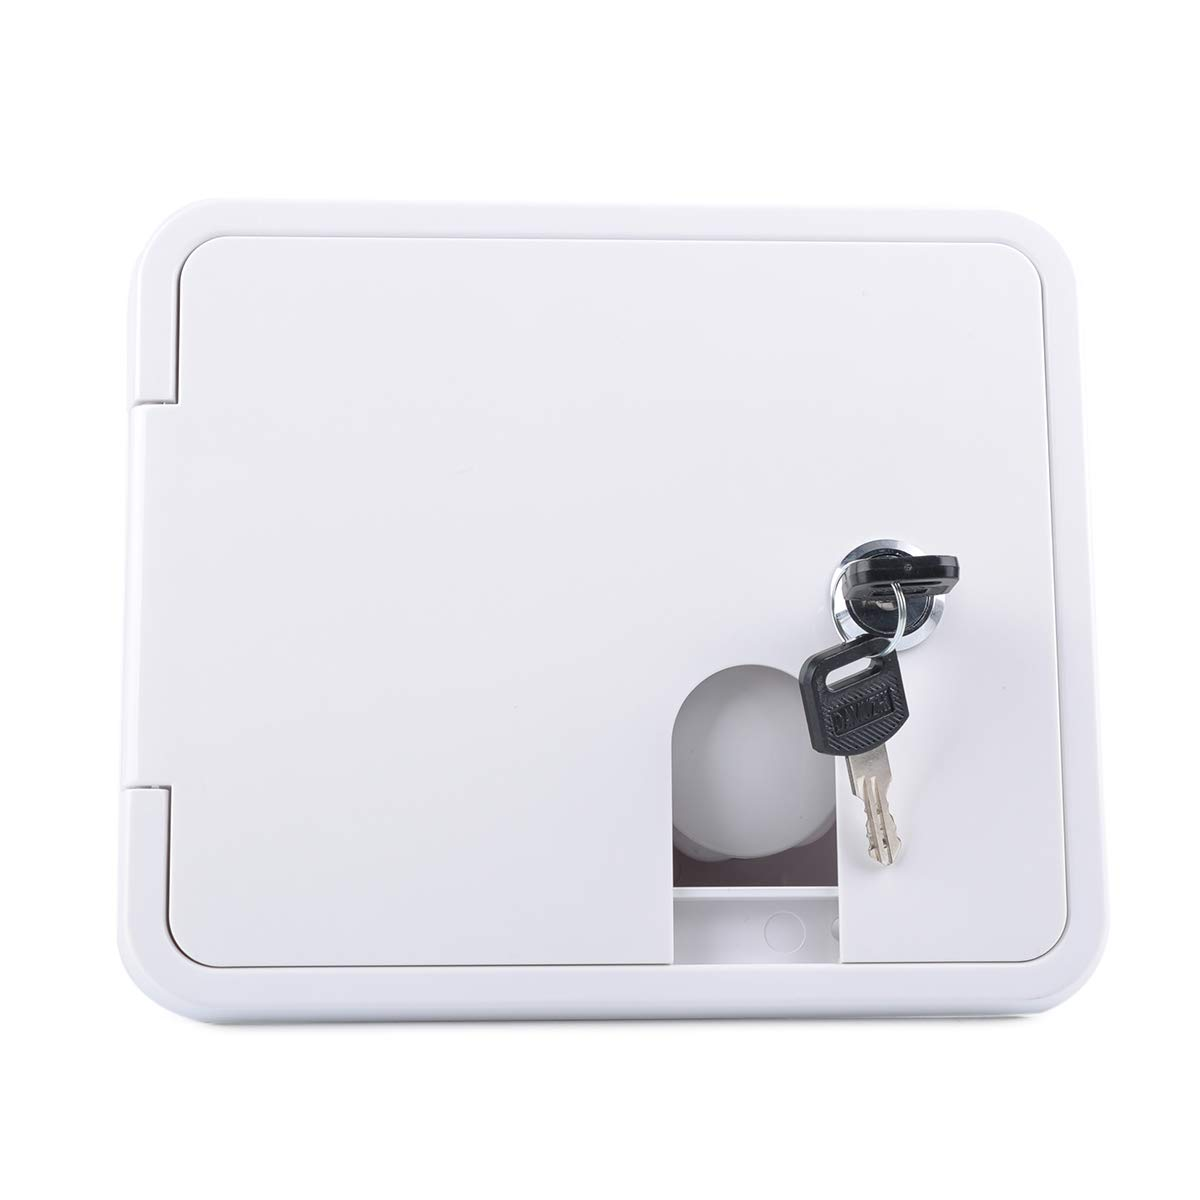 1-1//4 Tower Connector MHSZZAO White Gravity City Water Inlet Integrated Fill Dish Hatch Lock for RV Trailer Camper Back of 1//2